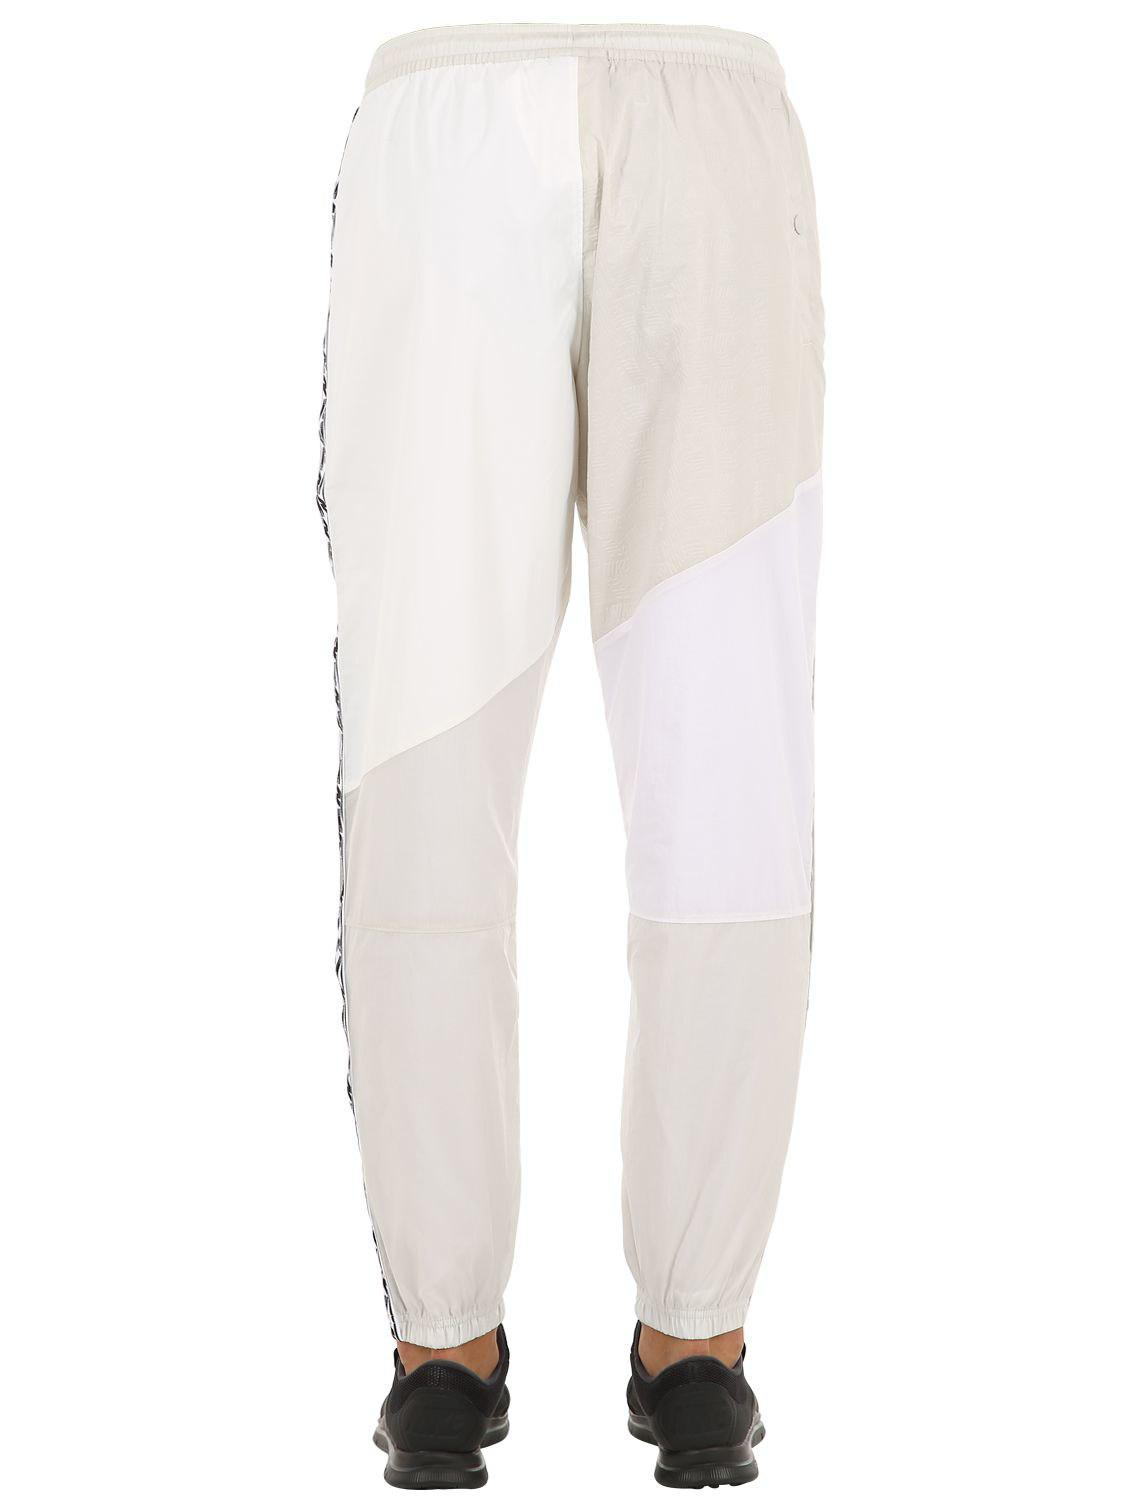 4c6cb3dff532 Lyst - Nike Nsw Taped Woven Track Pants in White for Men